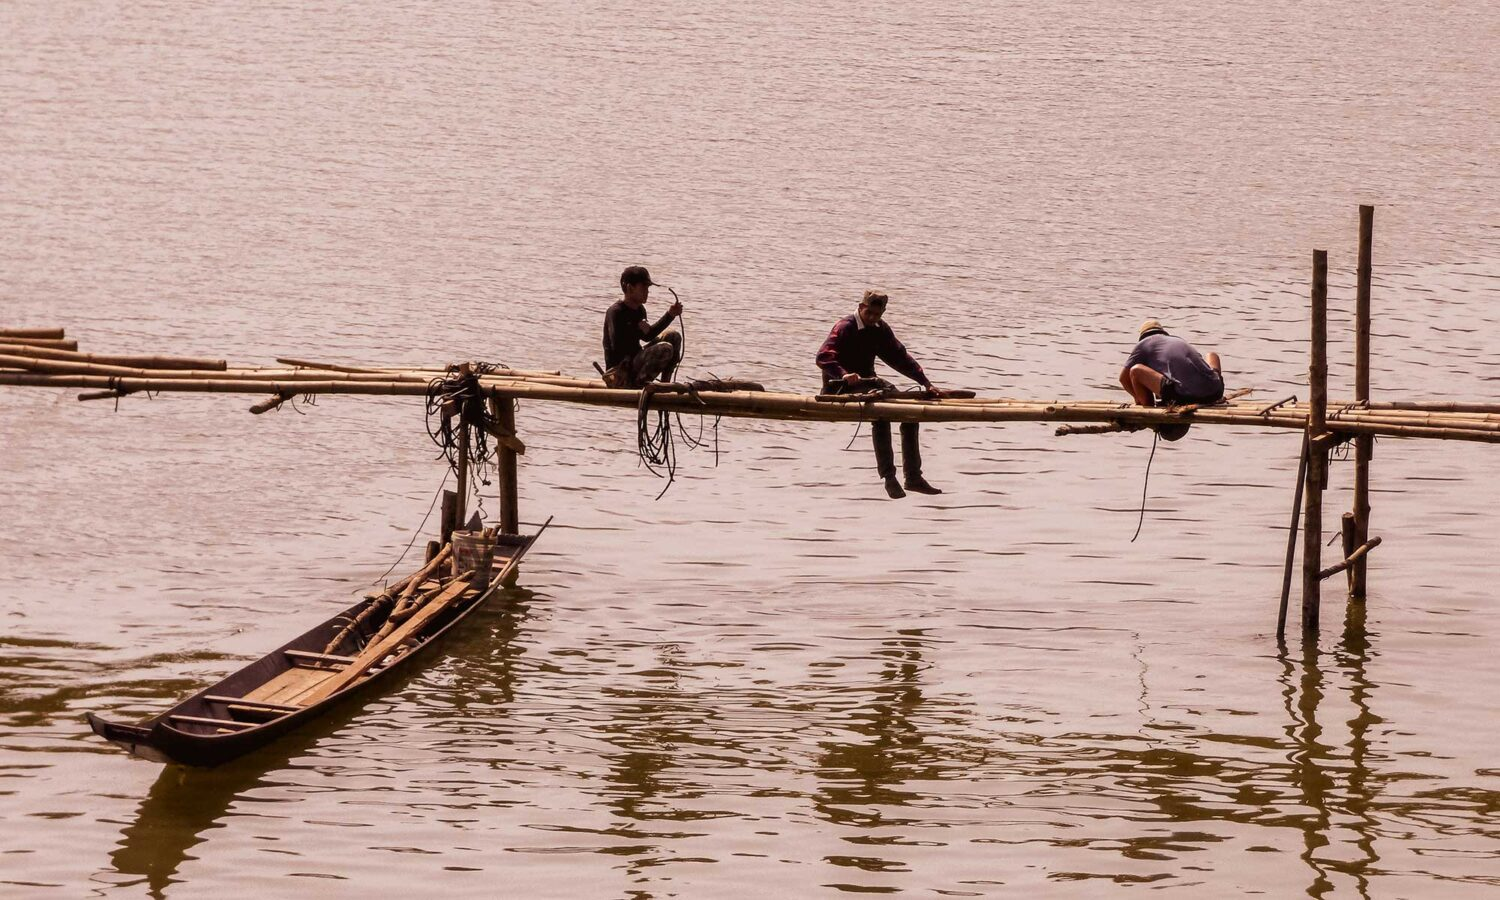 Local men building a bamboo bridge over the mighty Mekong River in Luang Prabang